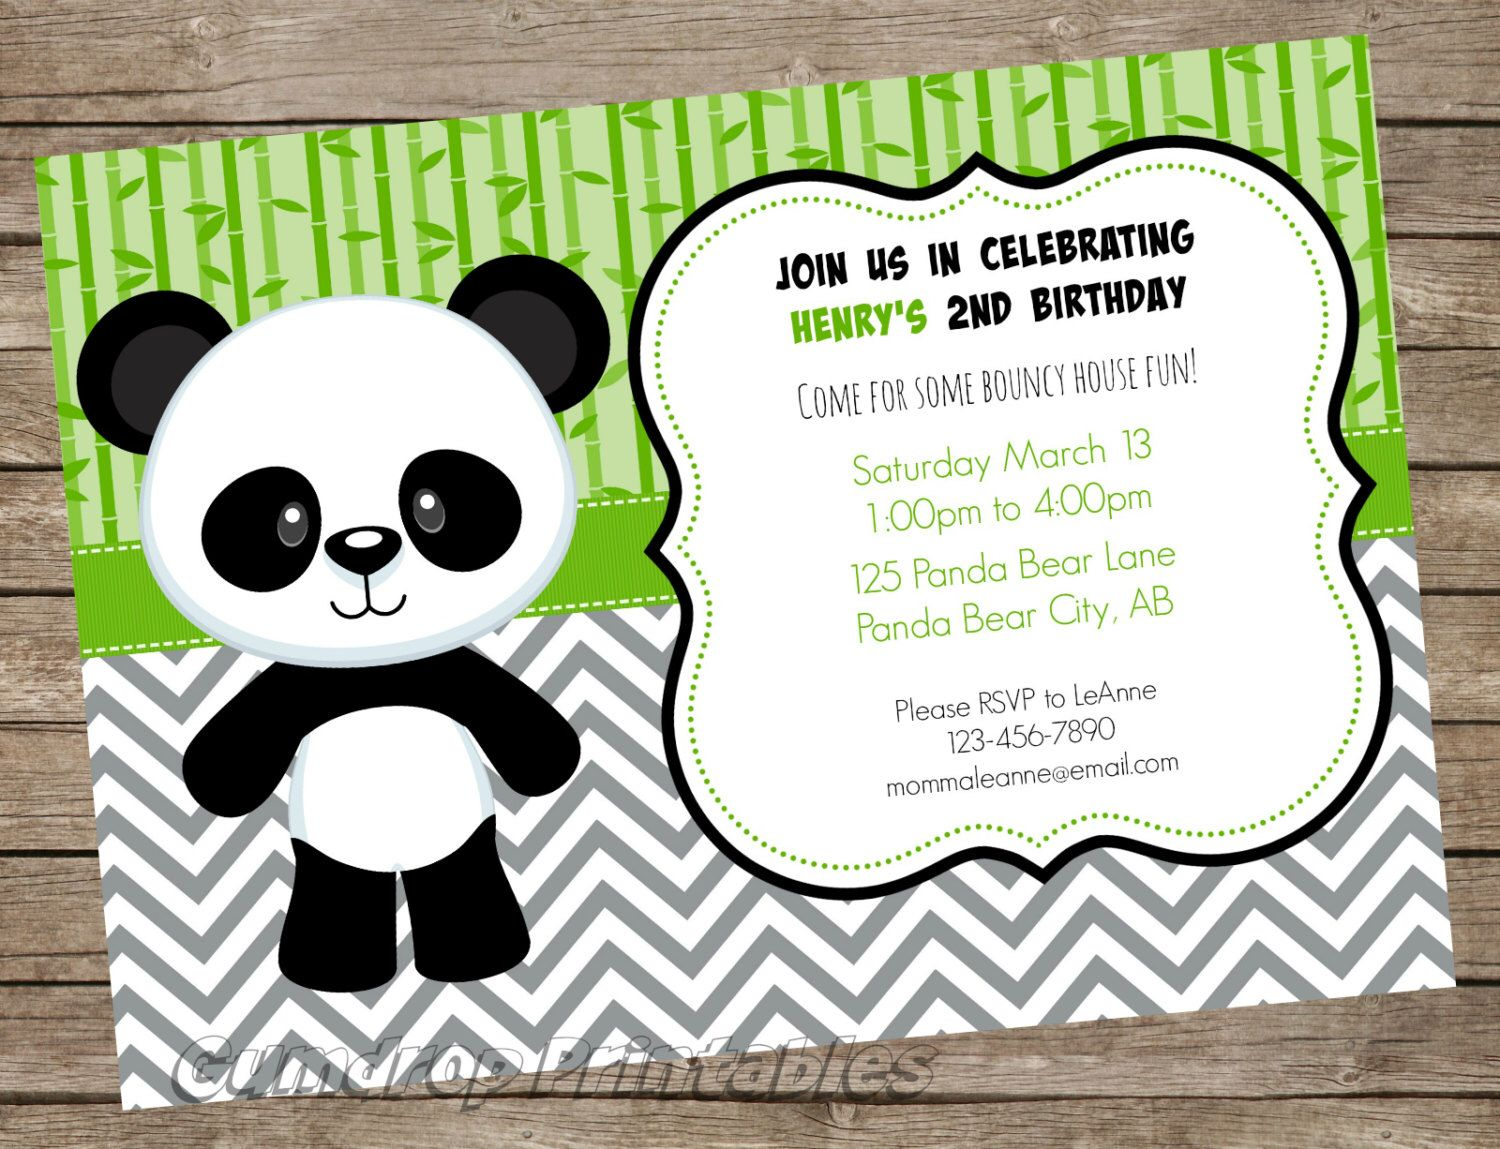 Pin by Is My Crazy Showing? on Panda Party | Pinterest | Boy ...